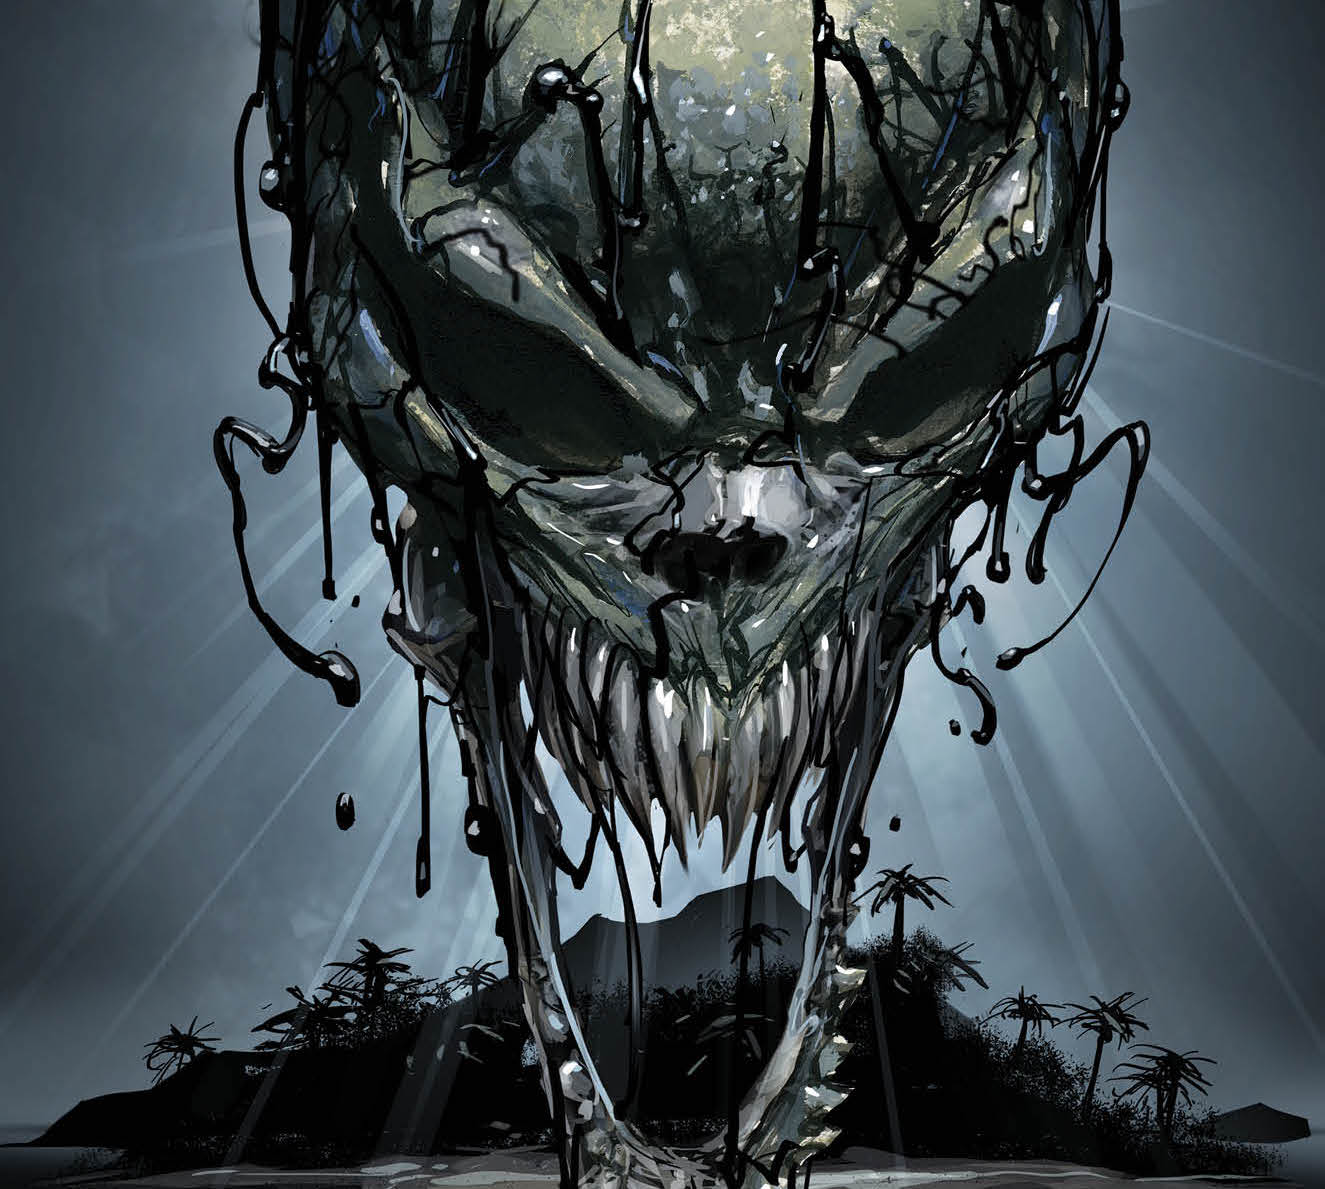 Take a tour on 'Venom Island' December 2019 with Donny Cates and Mark Bagley